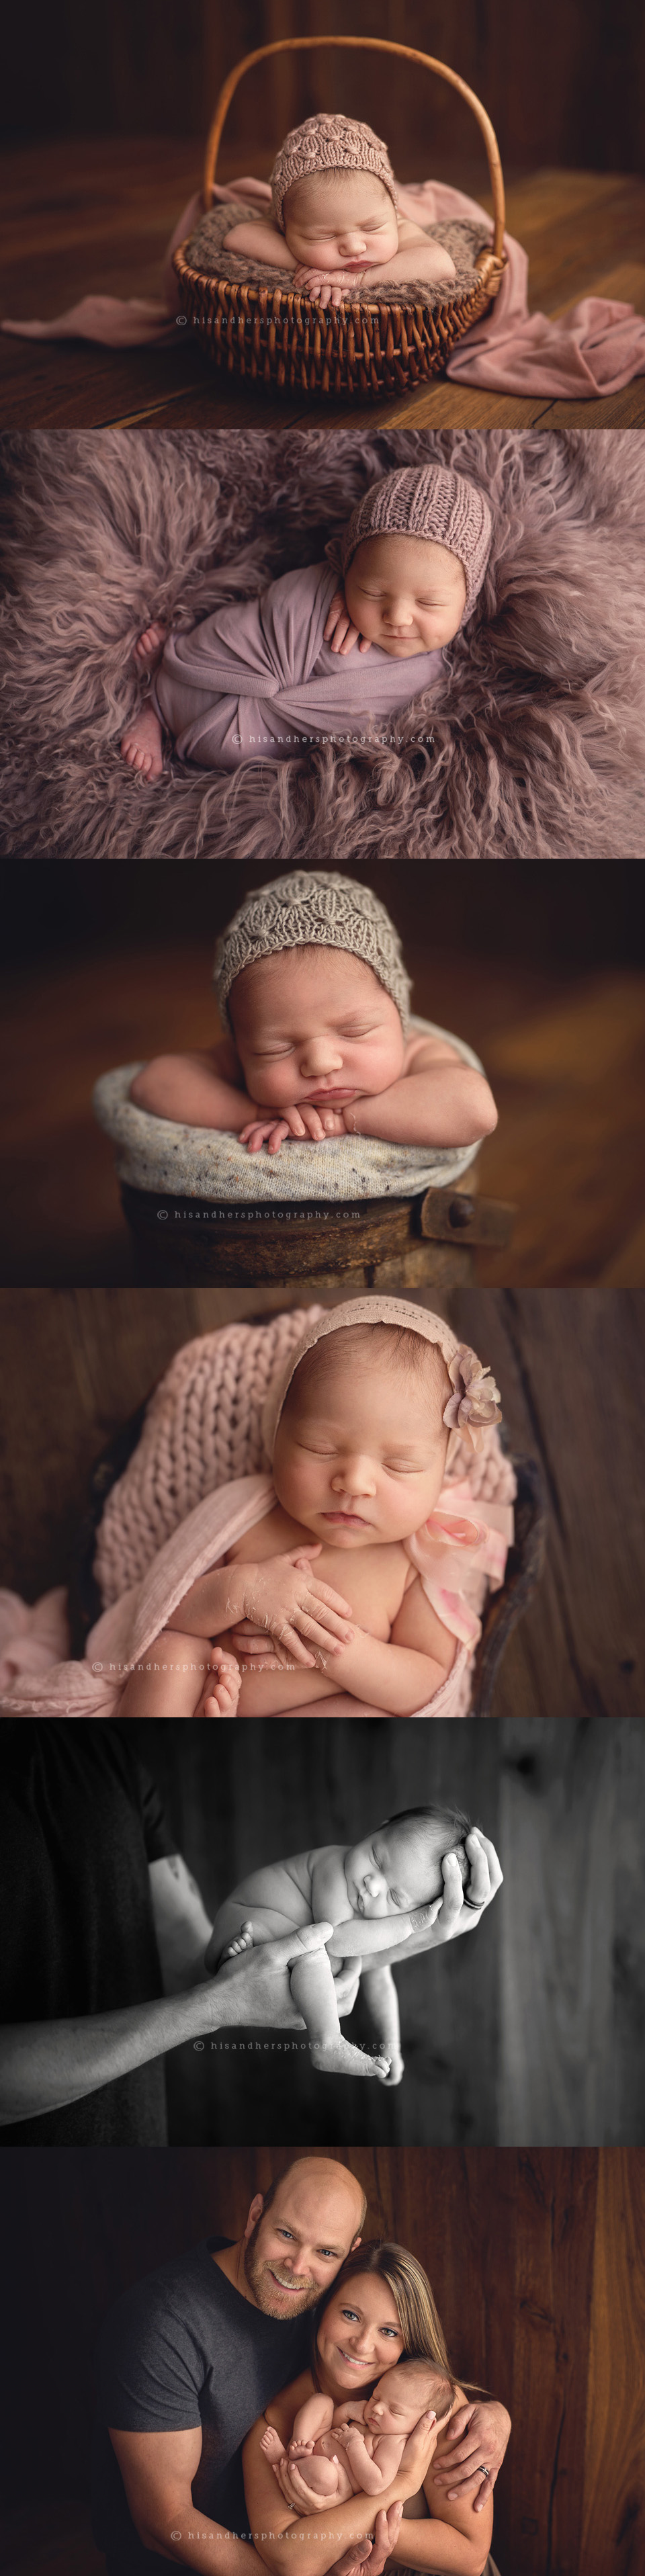 iowa newborn photographer des moines, iowa baby photography